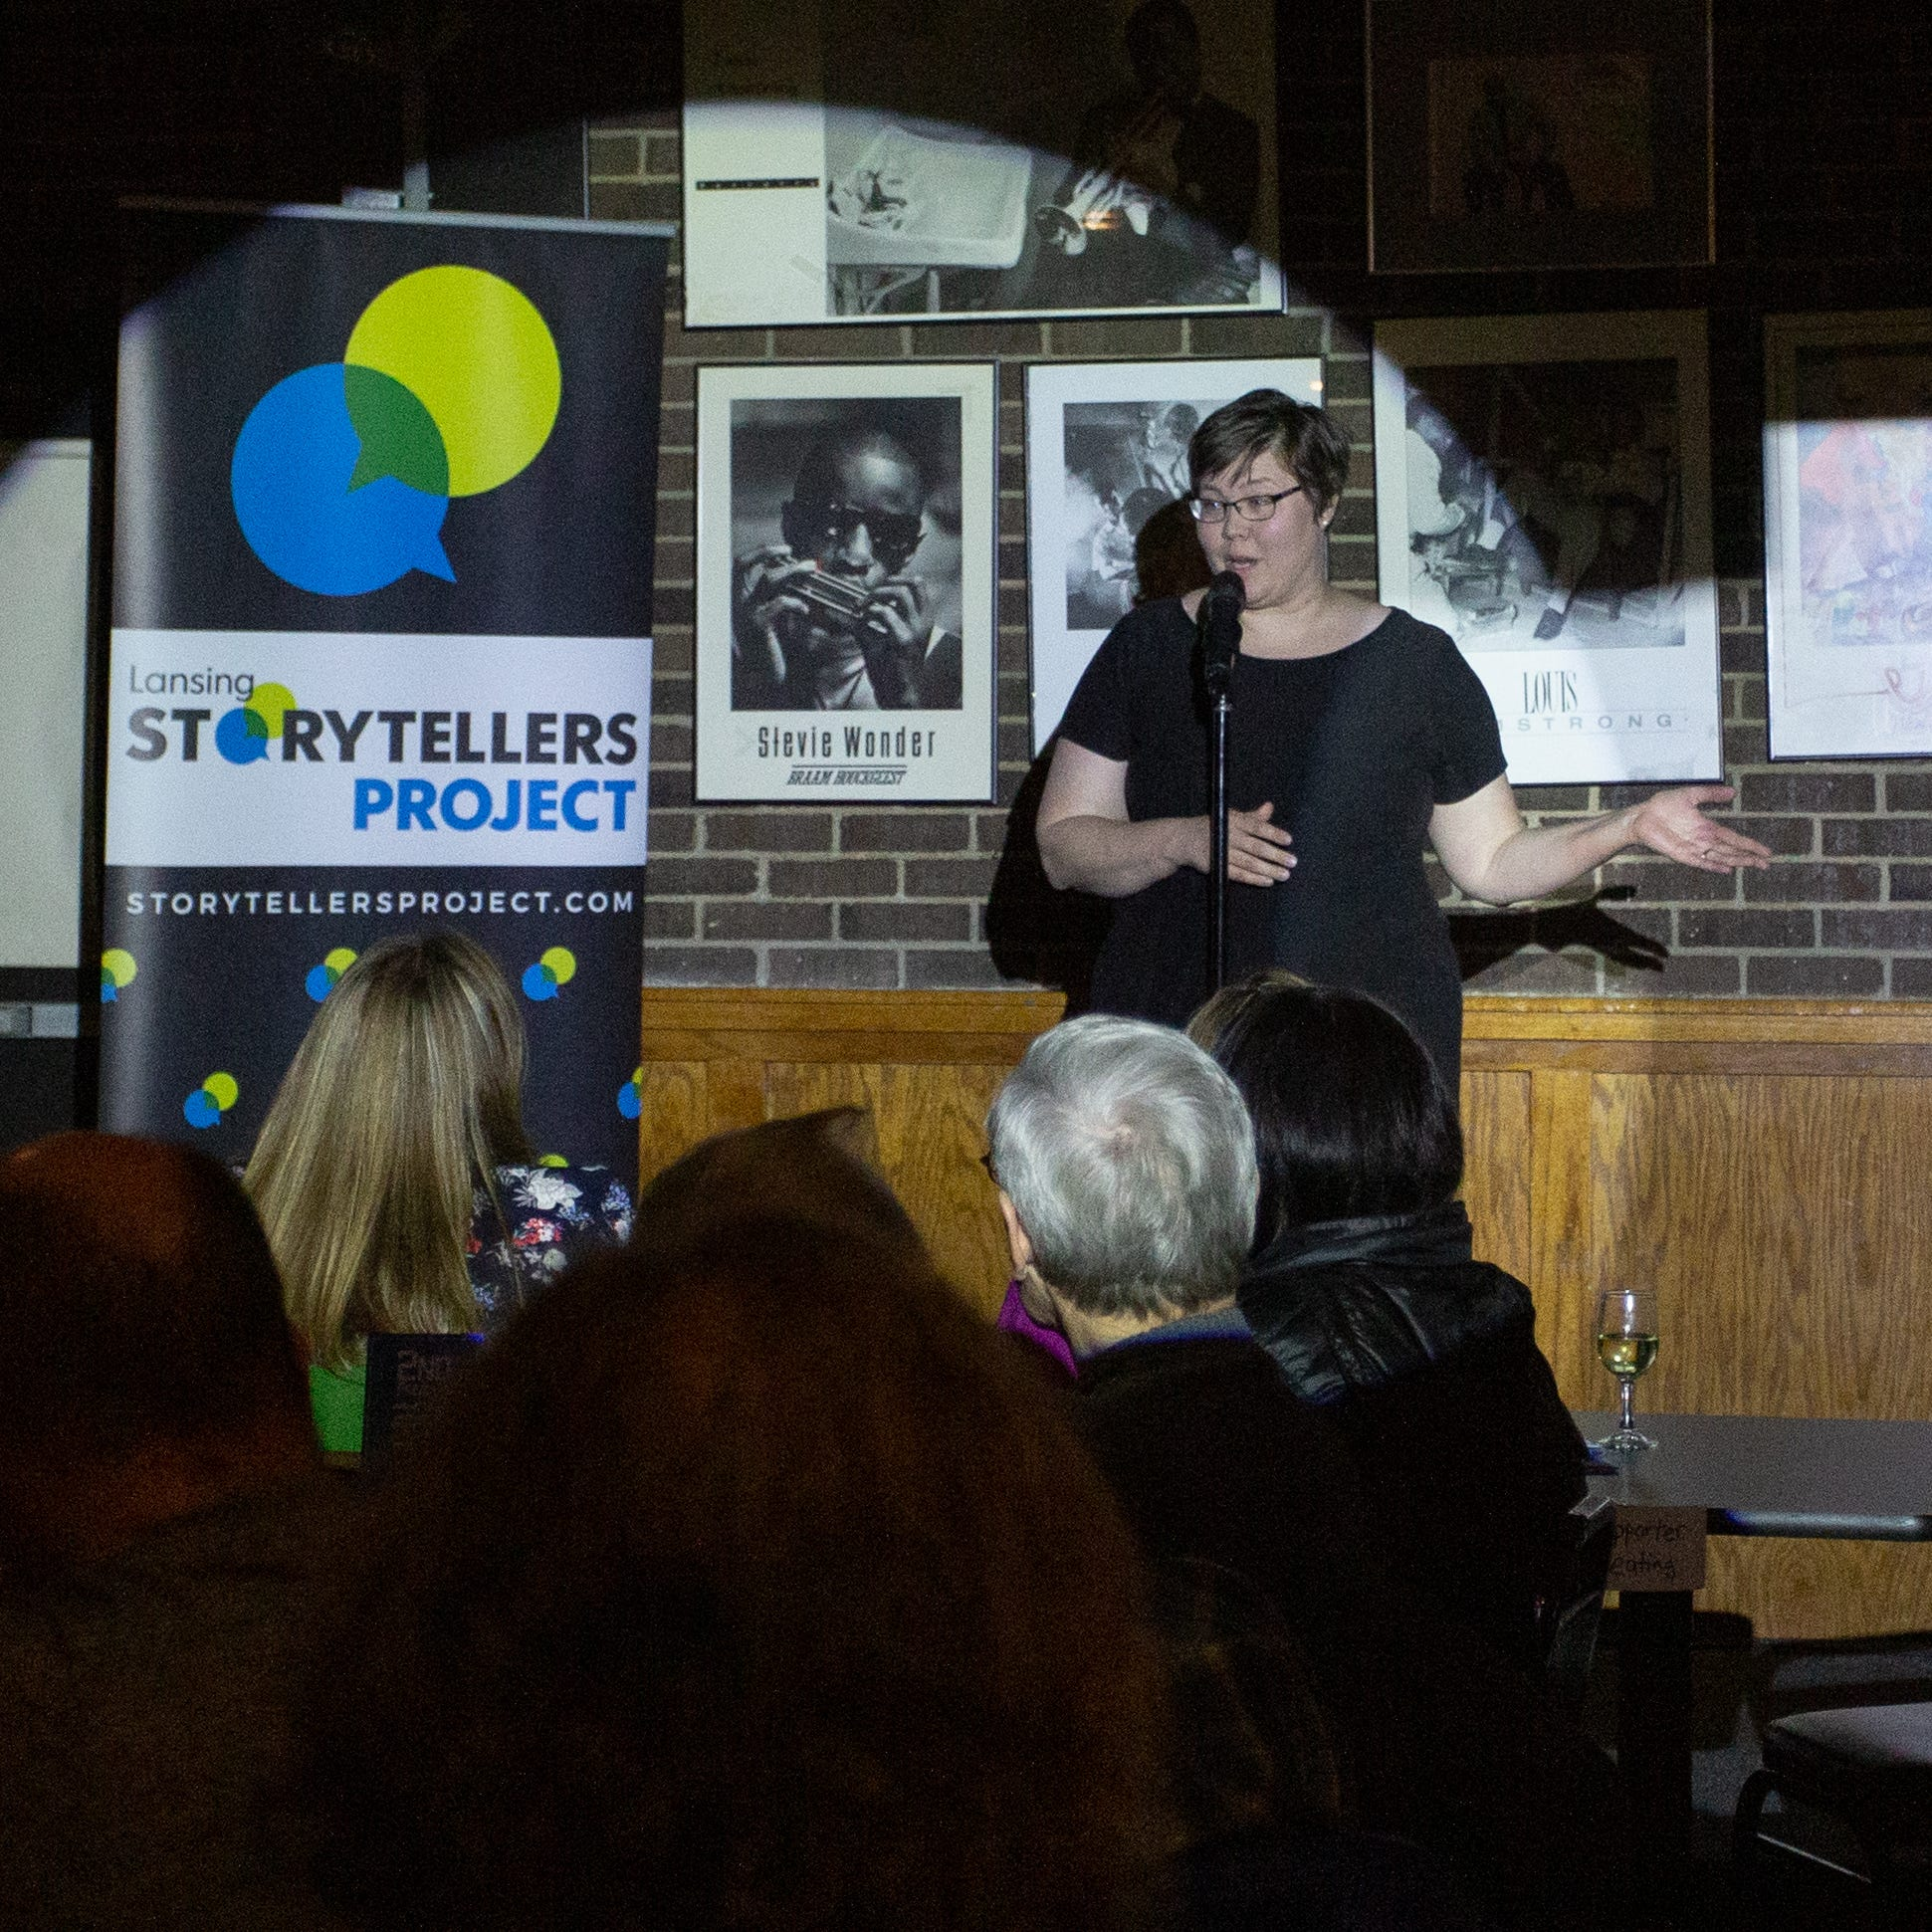 Lansing Storytellers Project 'Second Chances': The Stories